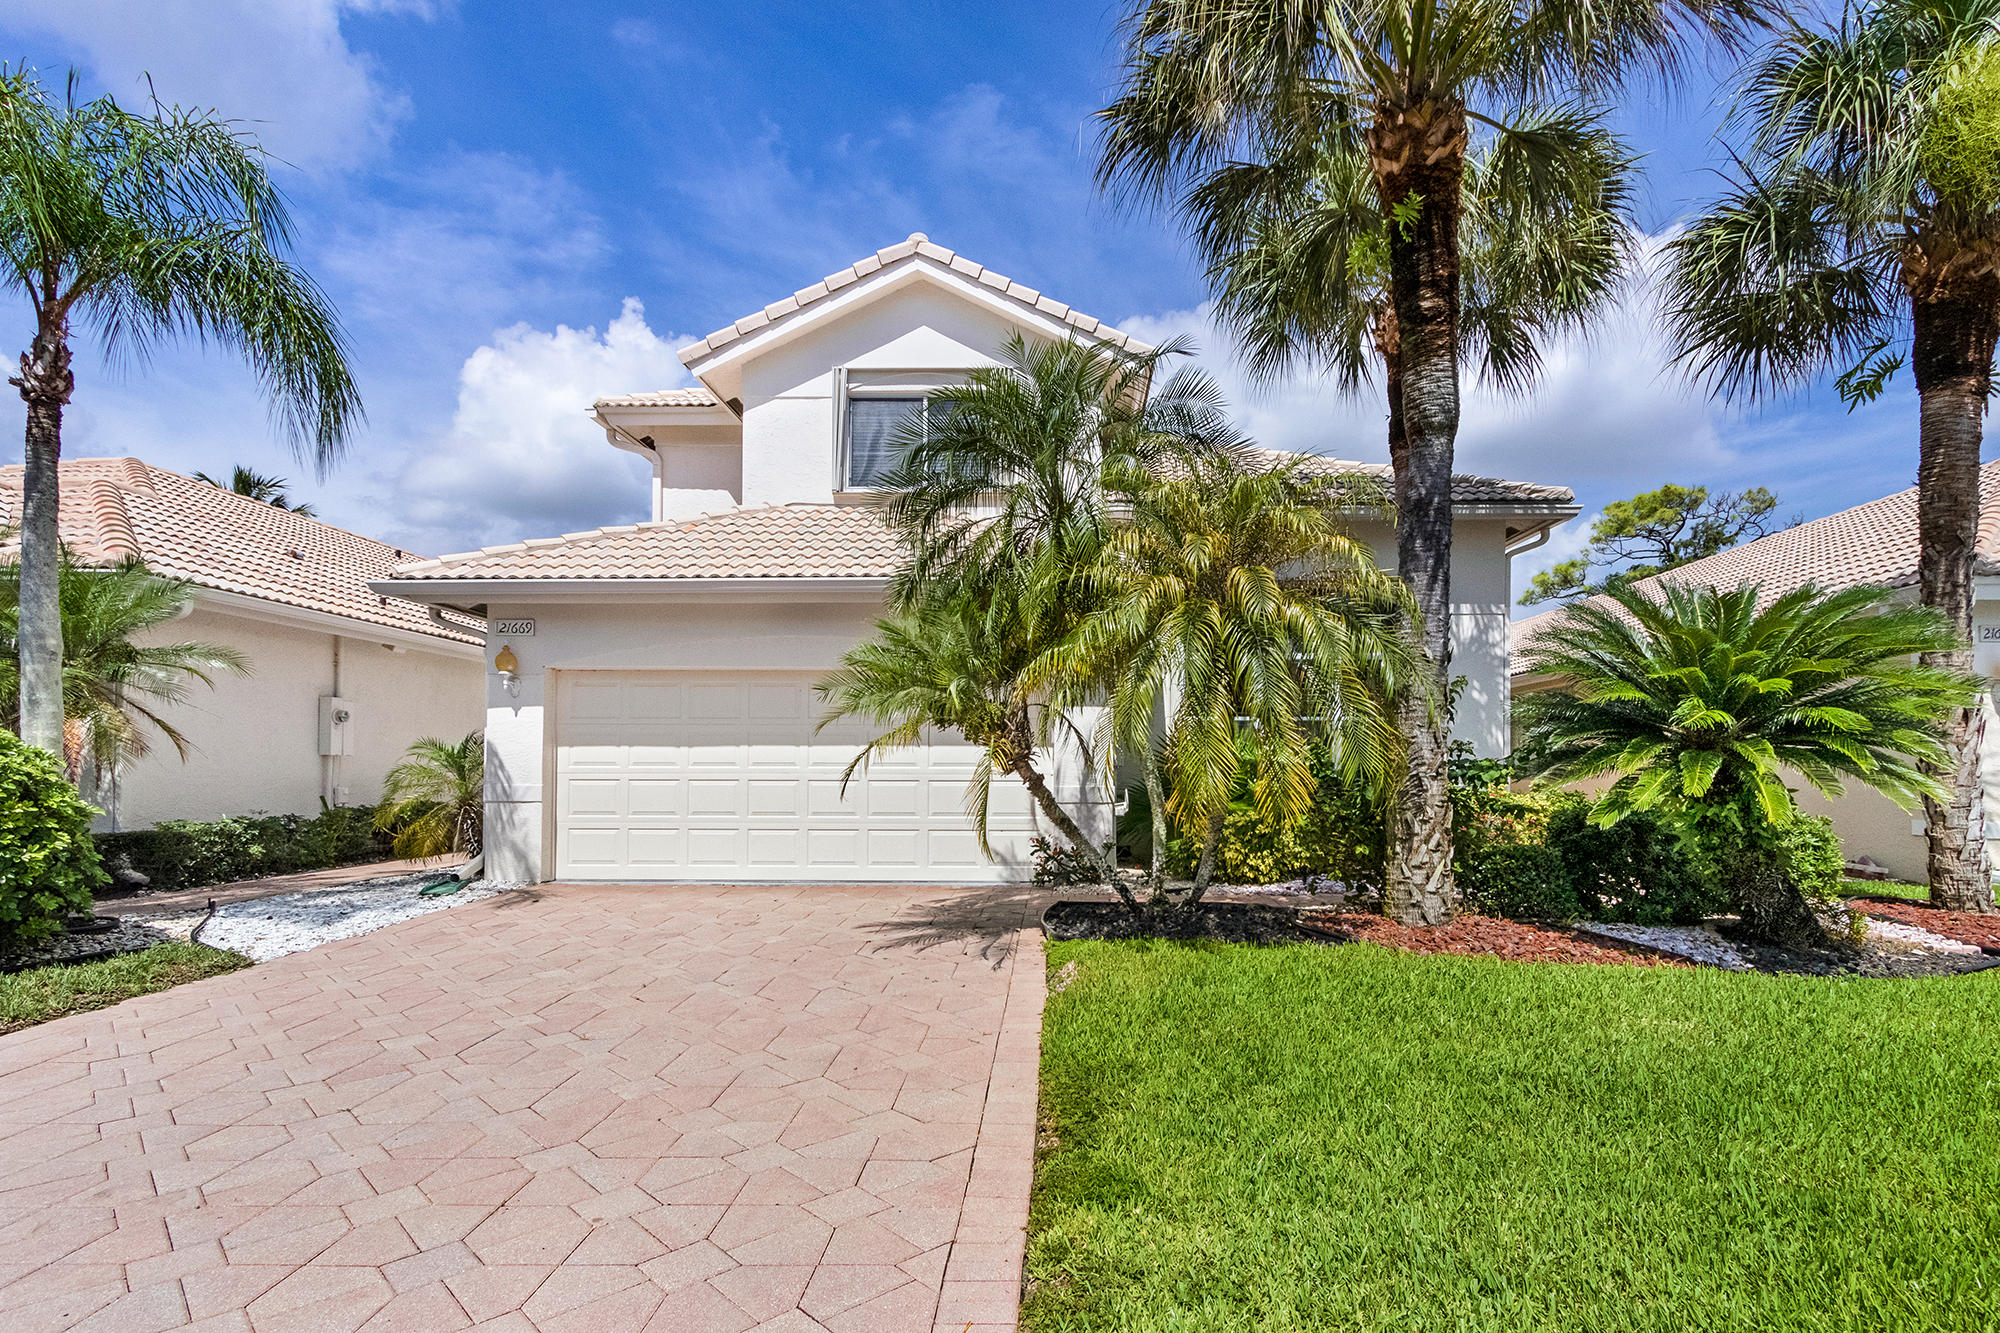 21669 Hammock Point Drive Boca Raton, FL 33433